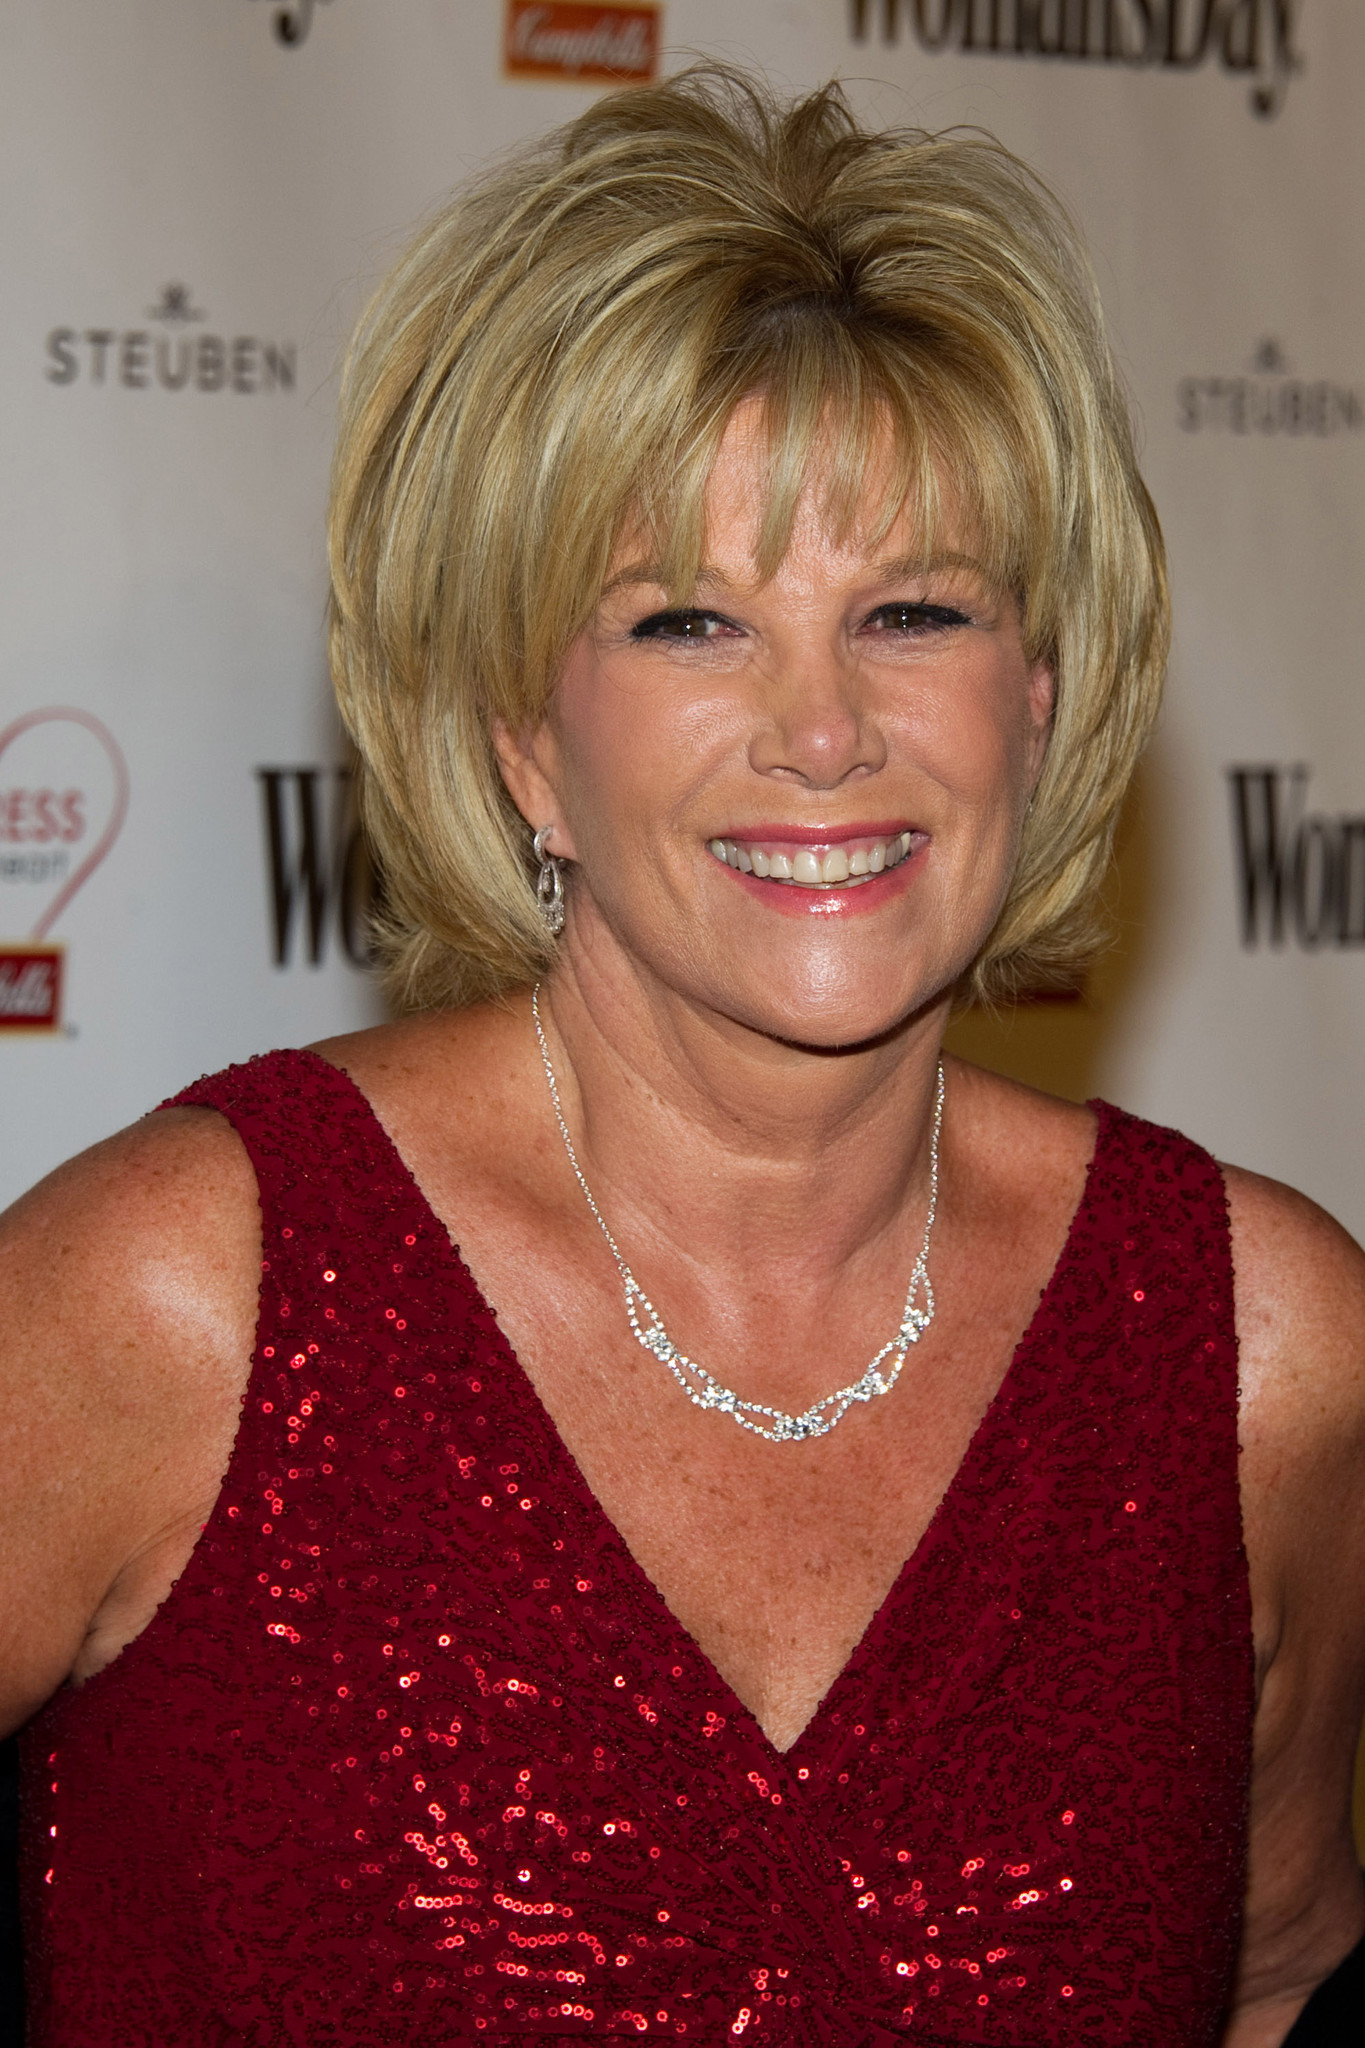 entertainment gossip la et mg joan lunden breast cancer good morning america story.